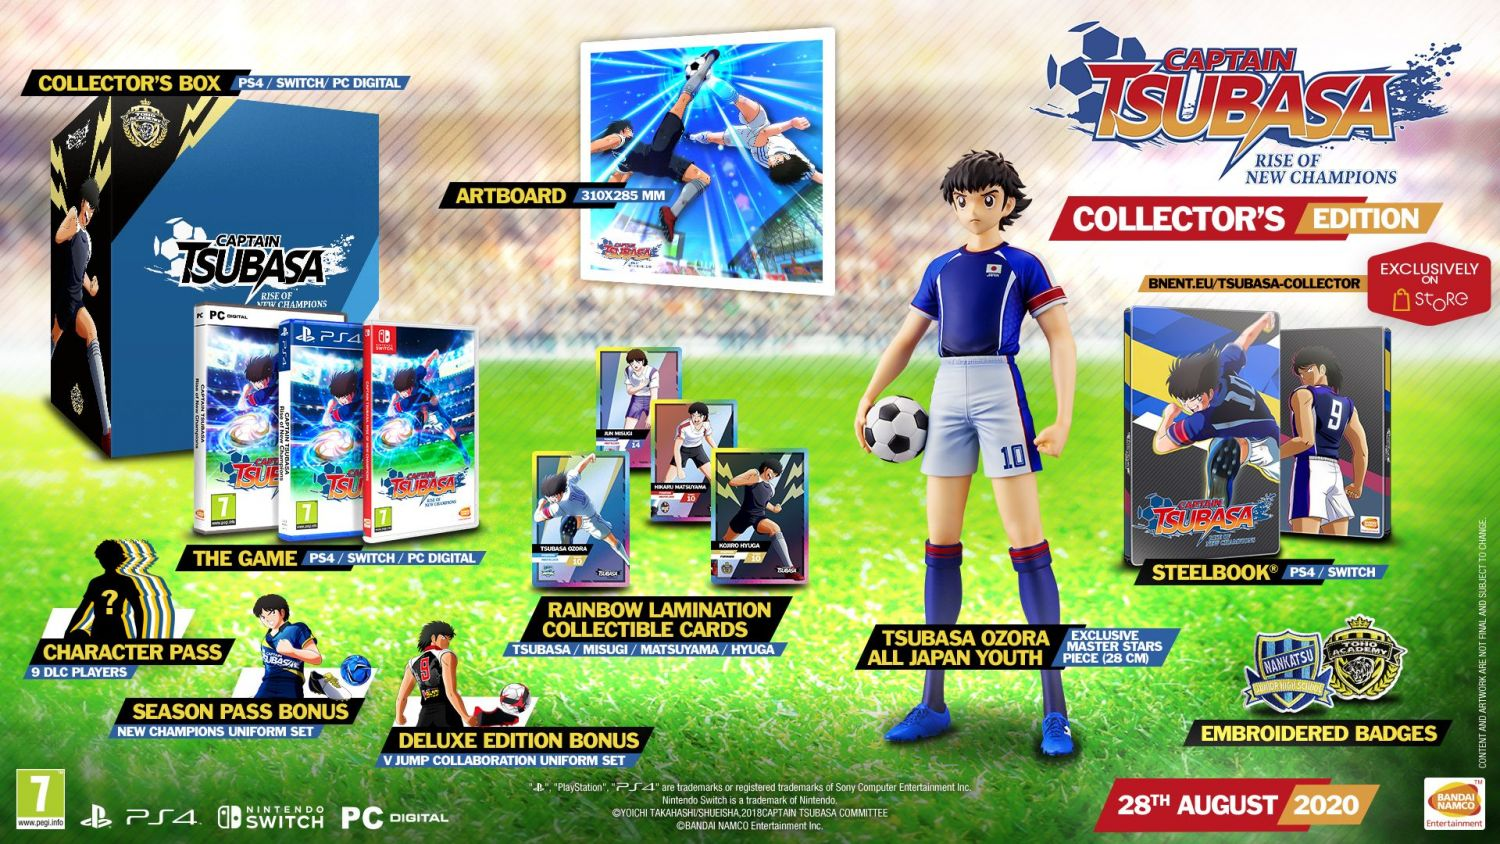 Captain Tsubasa Rise of New Champions Collector's Edition